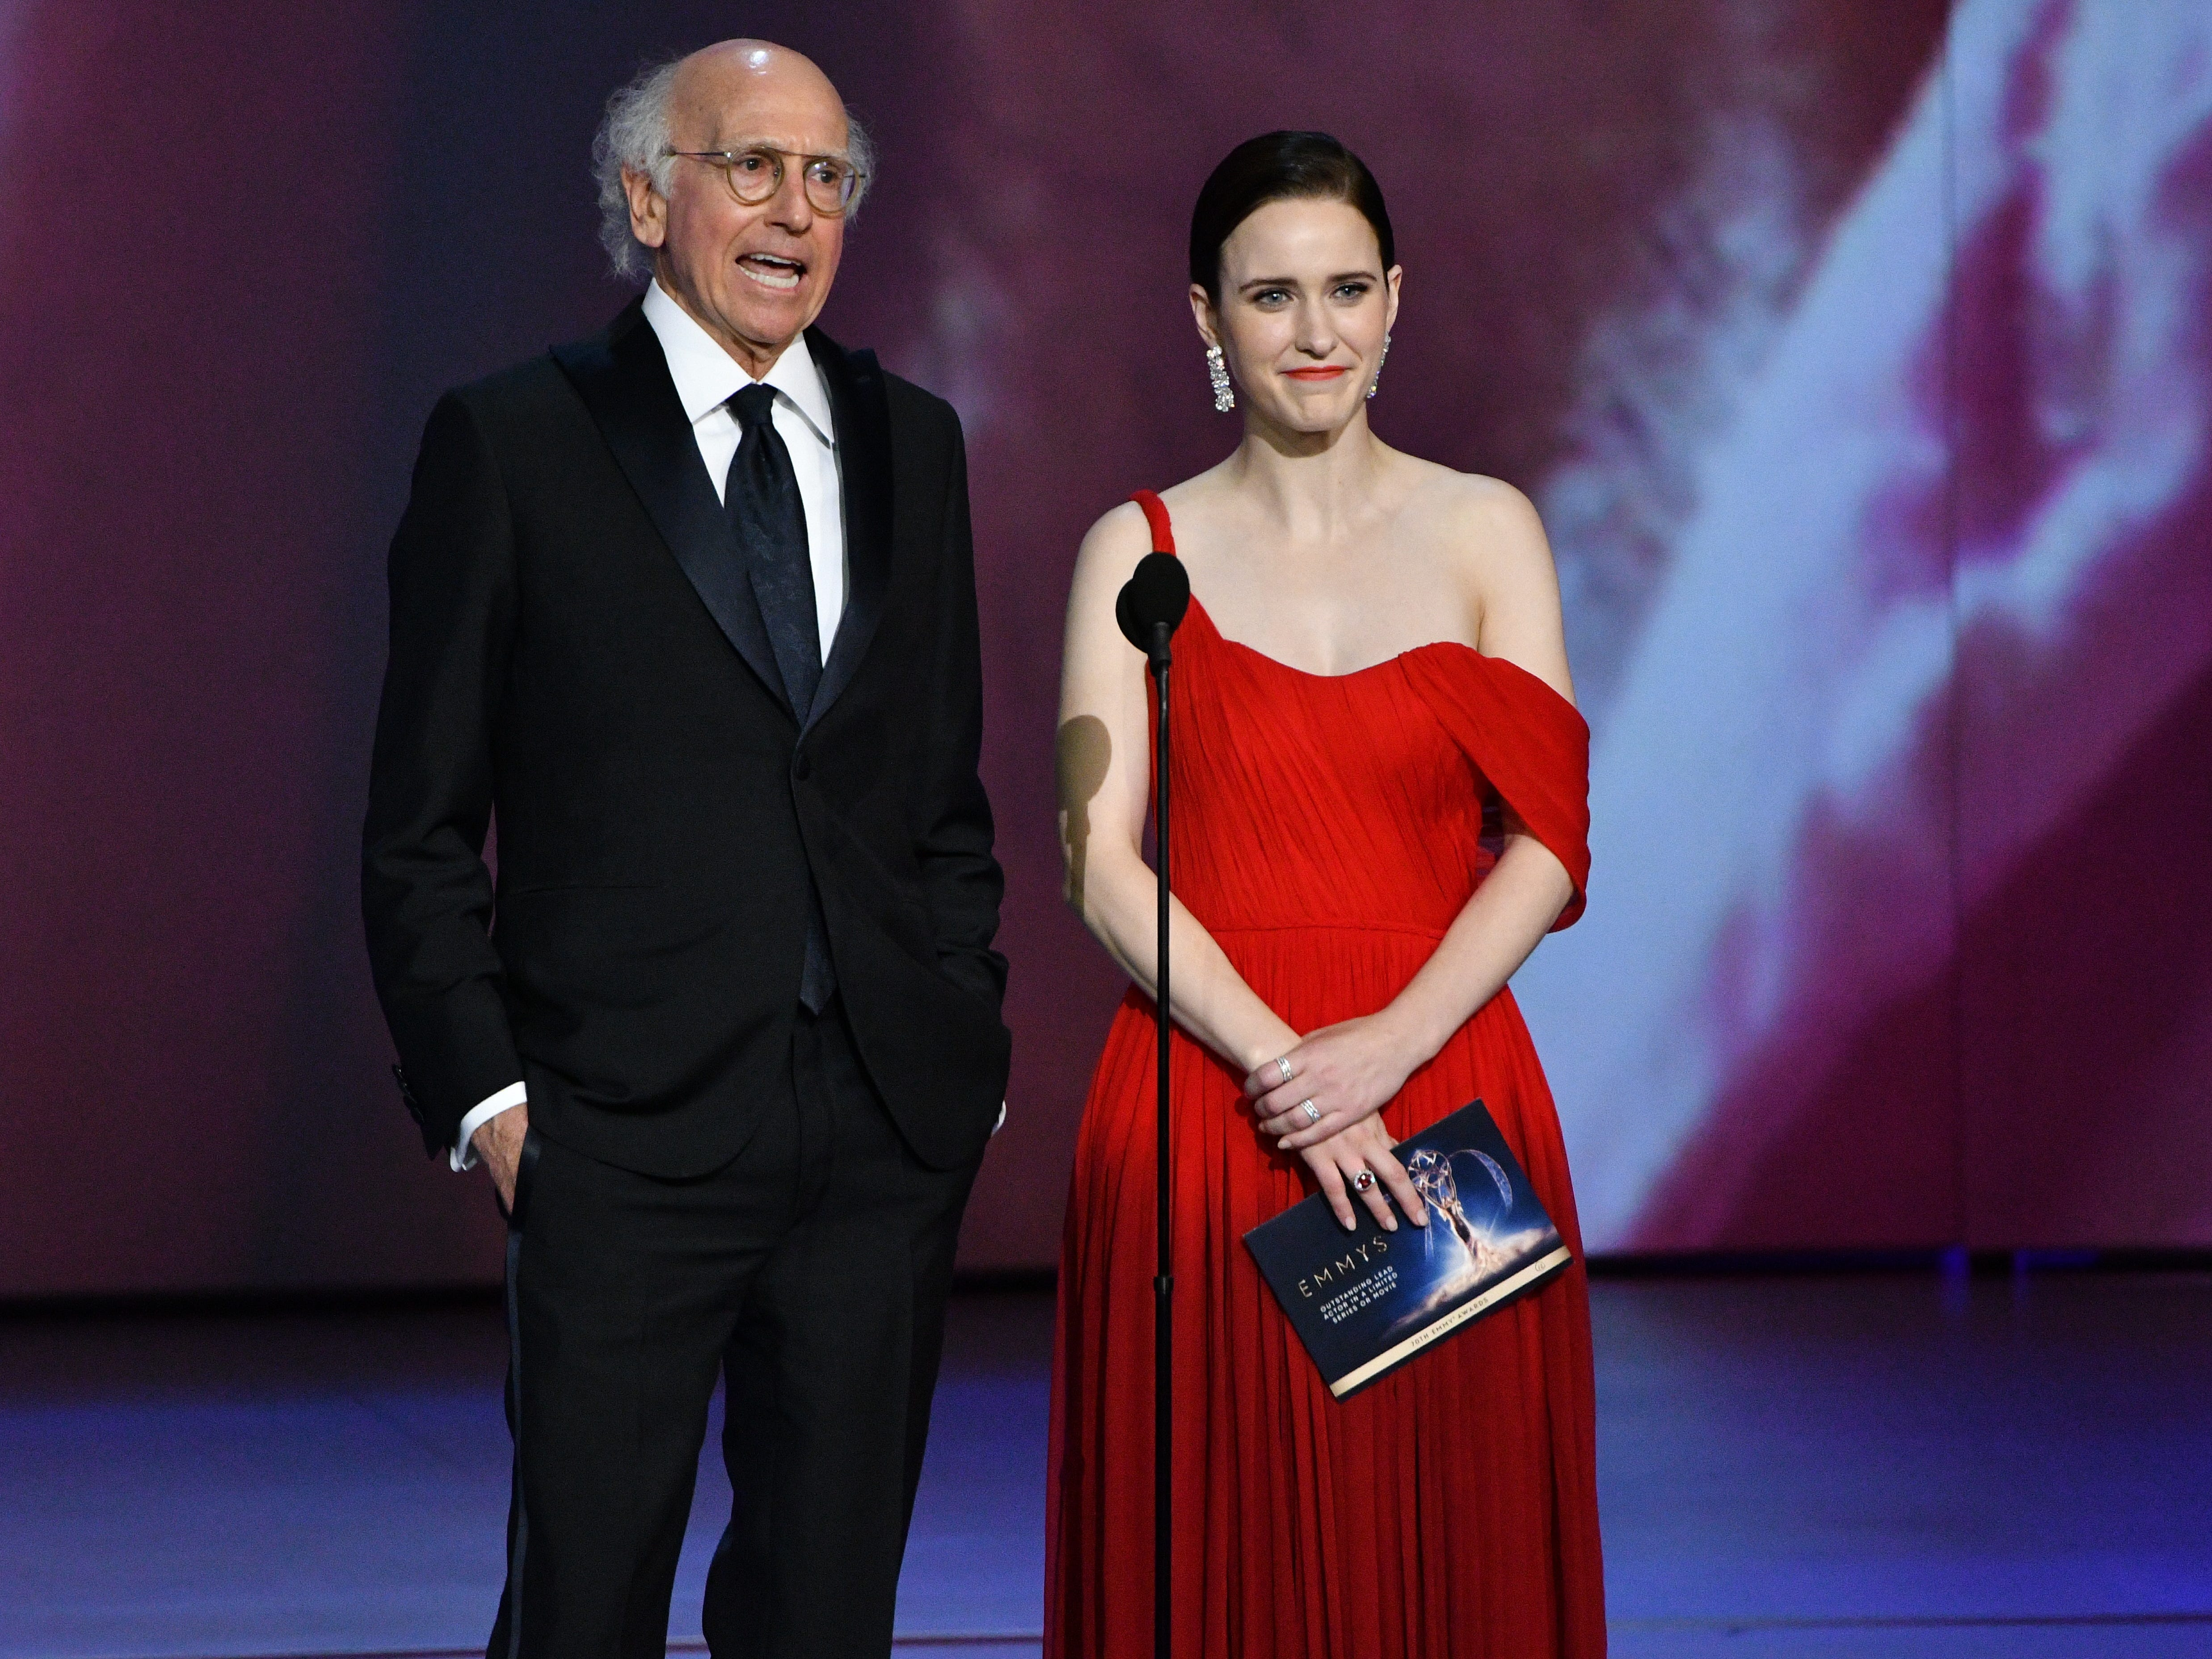 Larry David and Rachel Brosnahan present the award for lead actor in a limited series or movie.